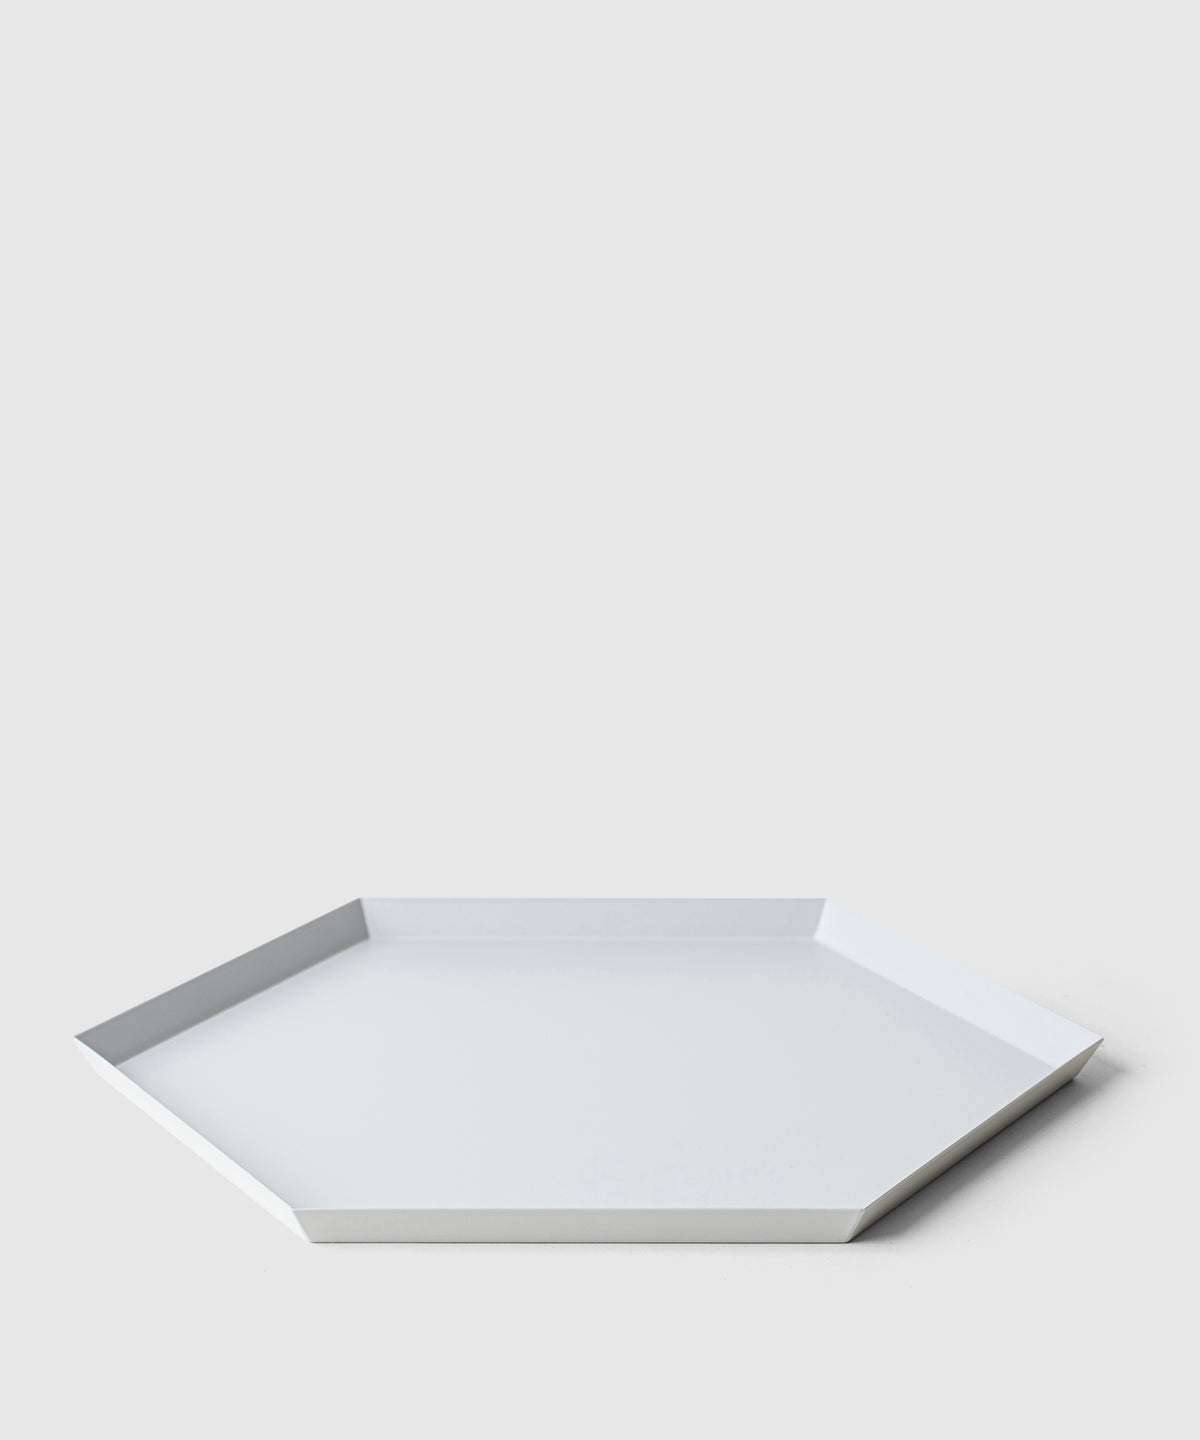 Generous Hex Organizing Tray – Grey Steel